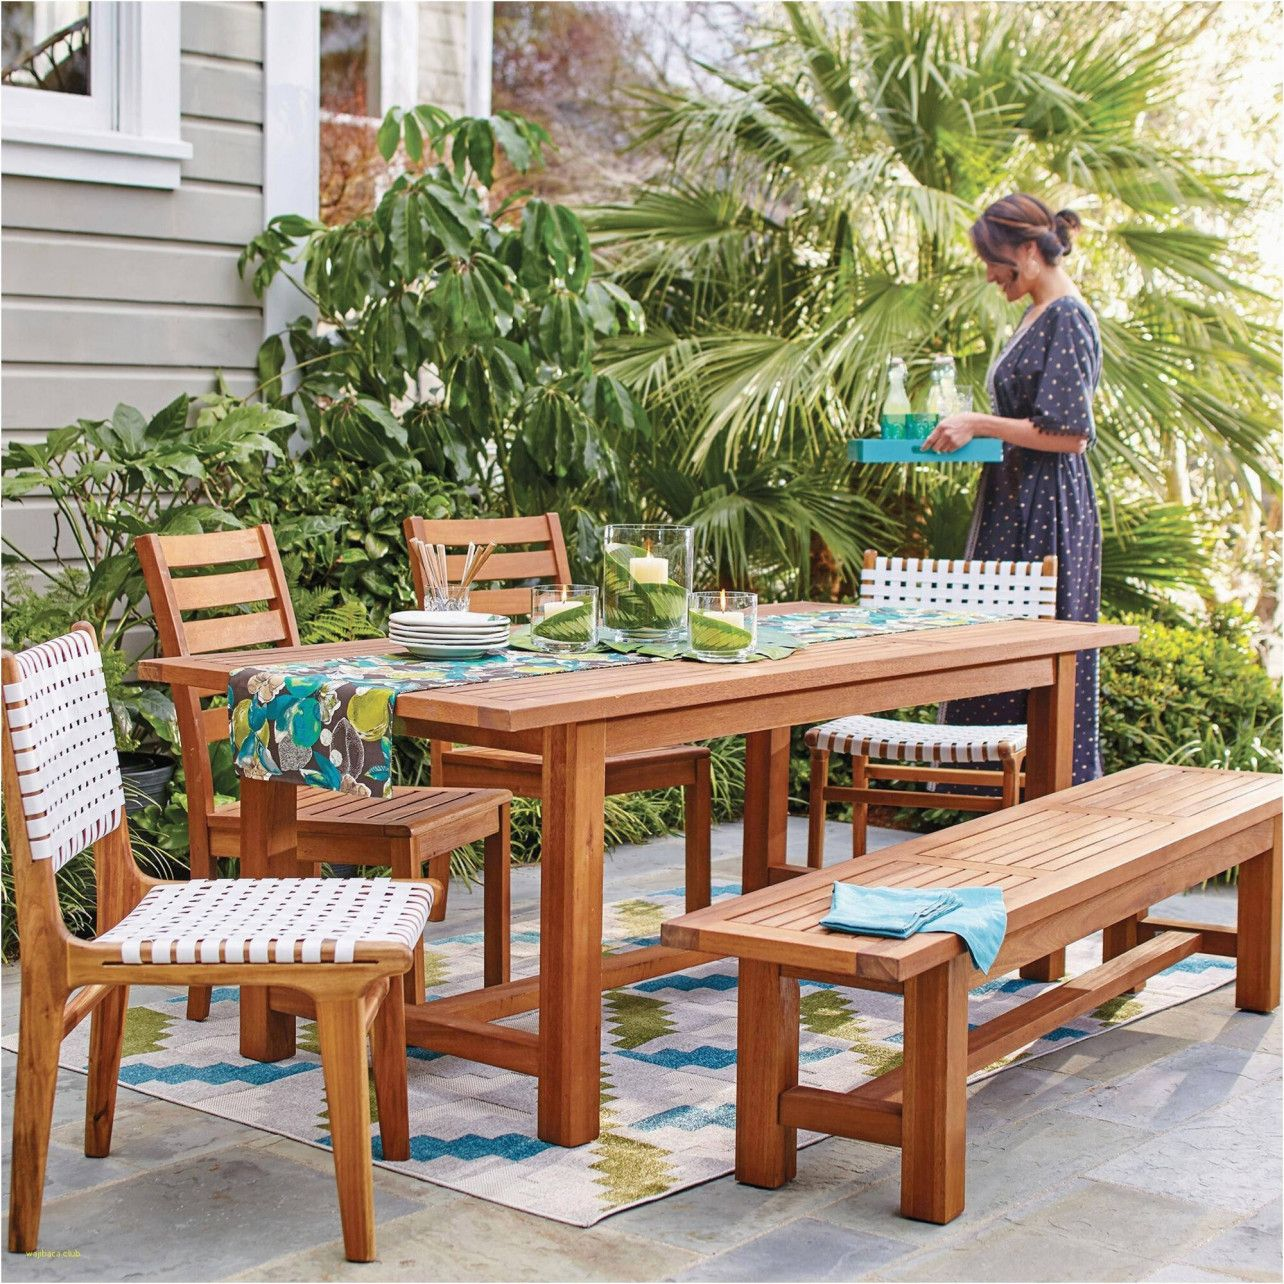 20 Lovely Fred Meyer Coffee Table 2020 Coffee Table Outdoor